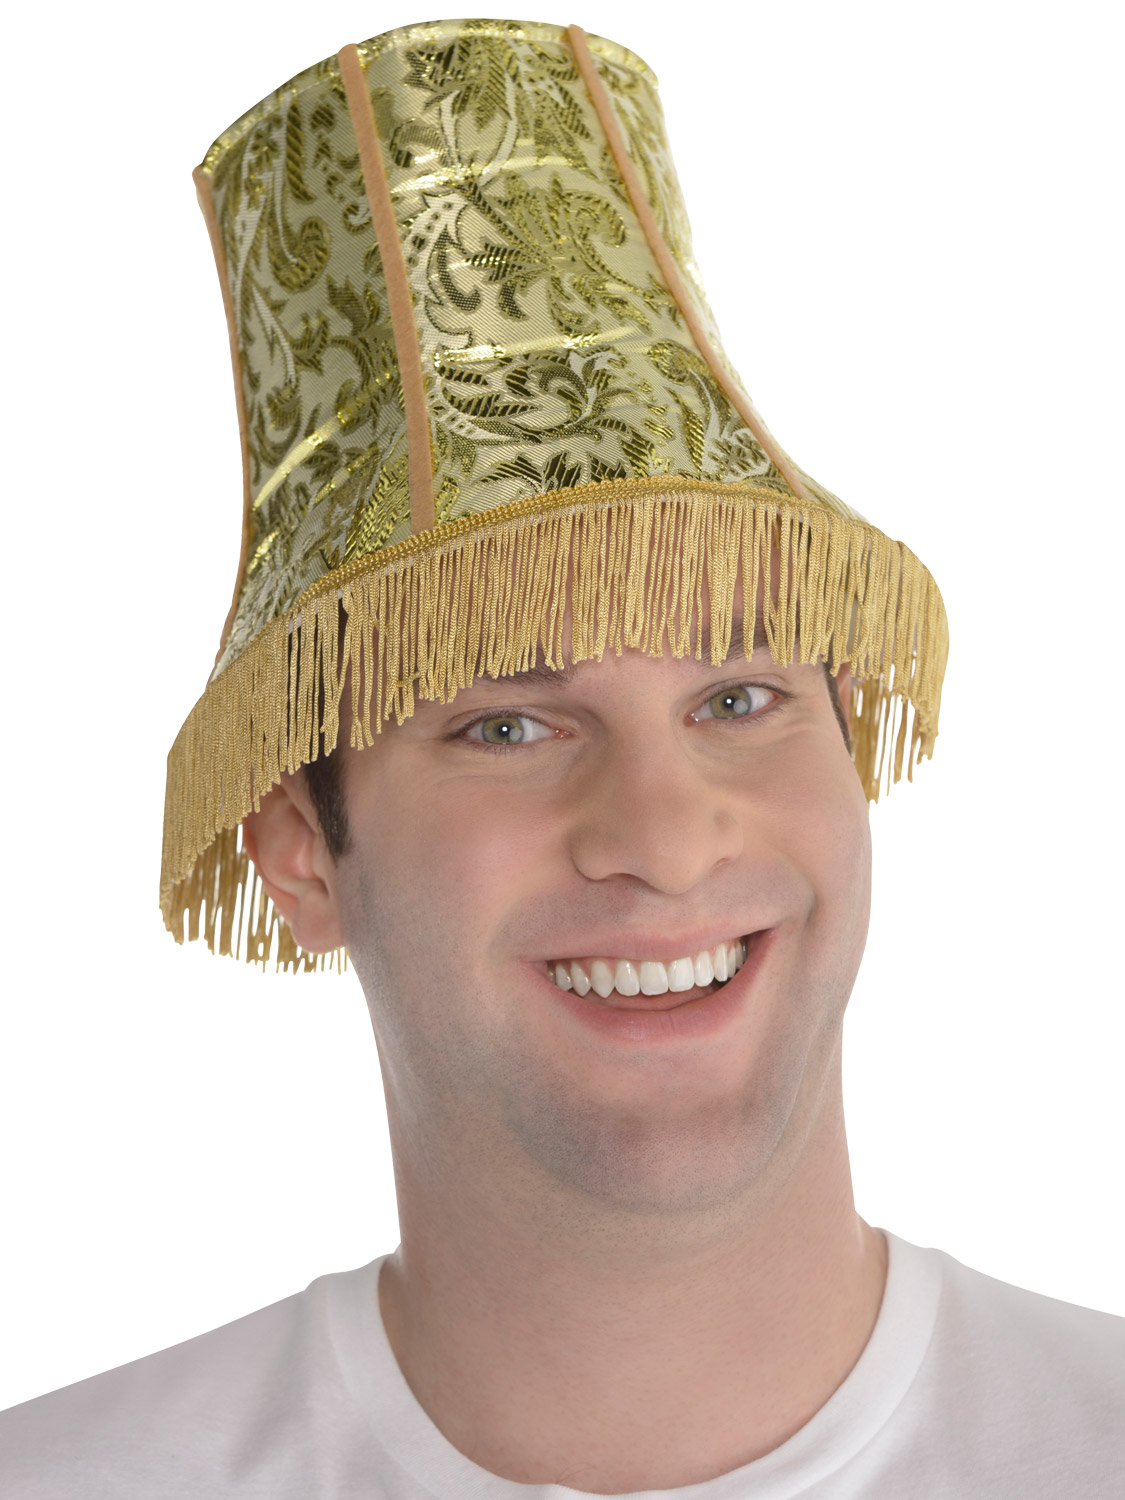 Details about Adult Lamp Shade Hat Mens Funny Novelty Fancy Dress Costume  Stag Party Accessory e69ea30943e